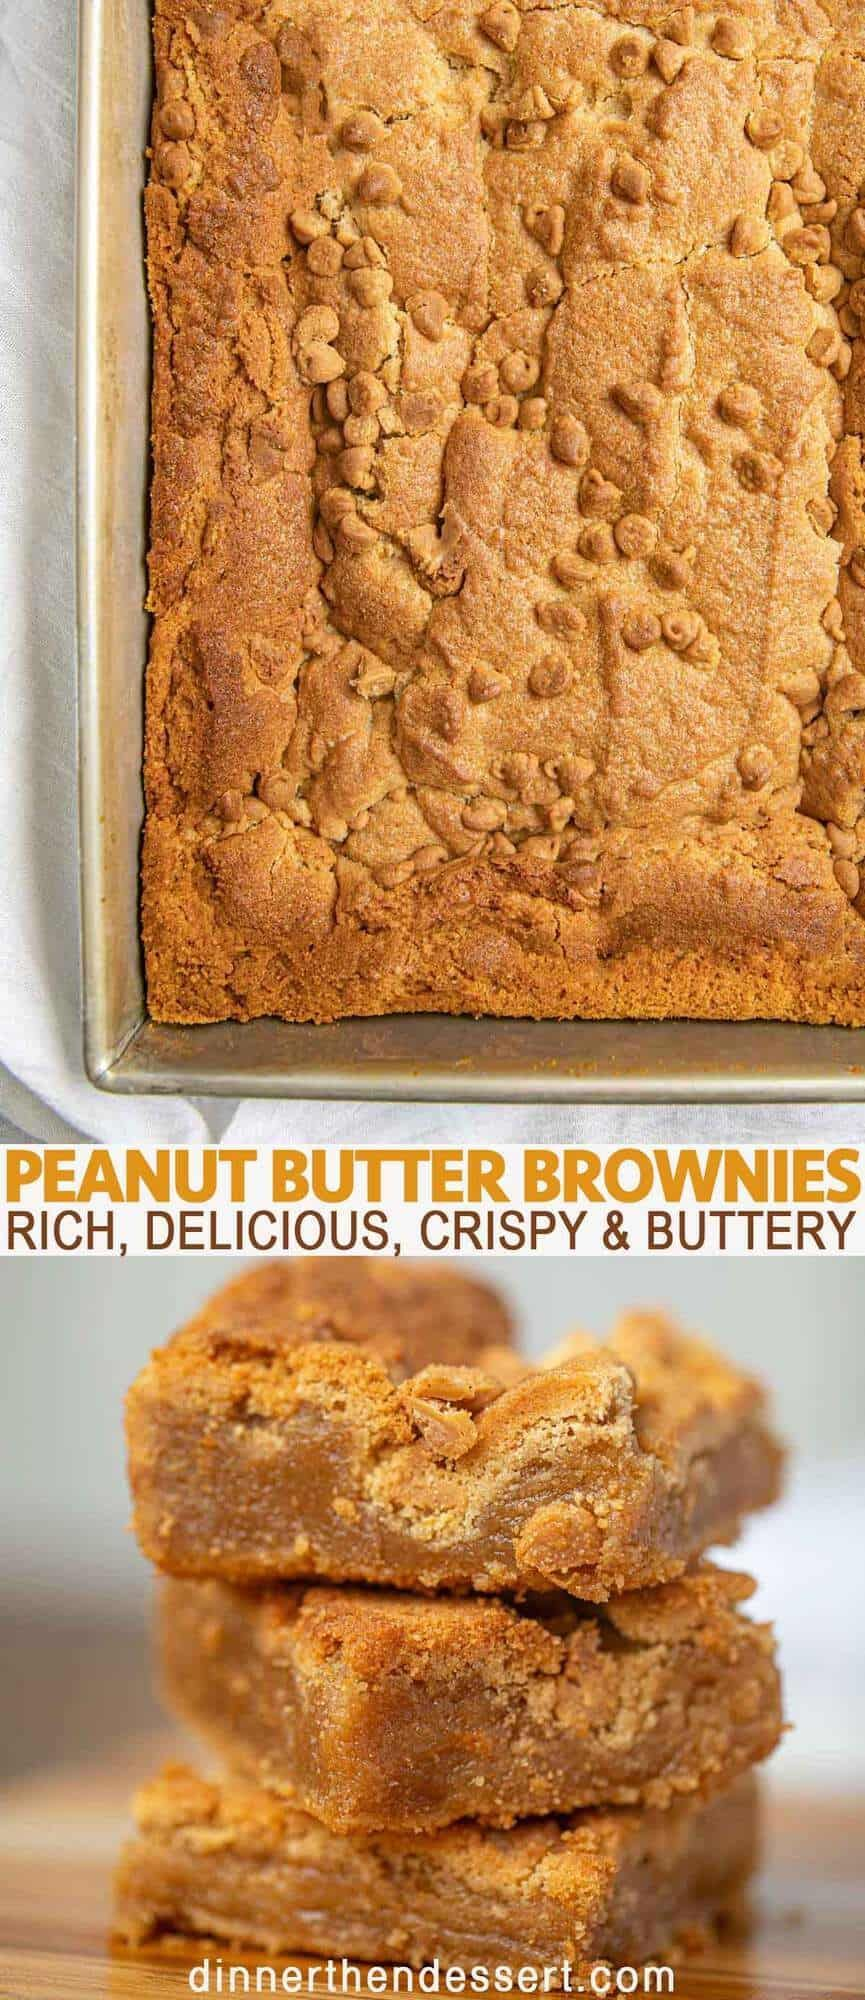 Peanut butter brownies are rich delicious crispy and buttery brownies with peanut butter filling and peanut butter chips in just 45 minutes The Effective Pictures We Offe...